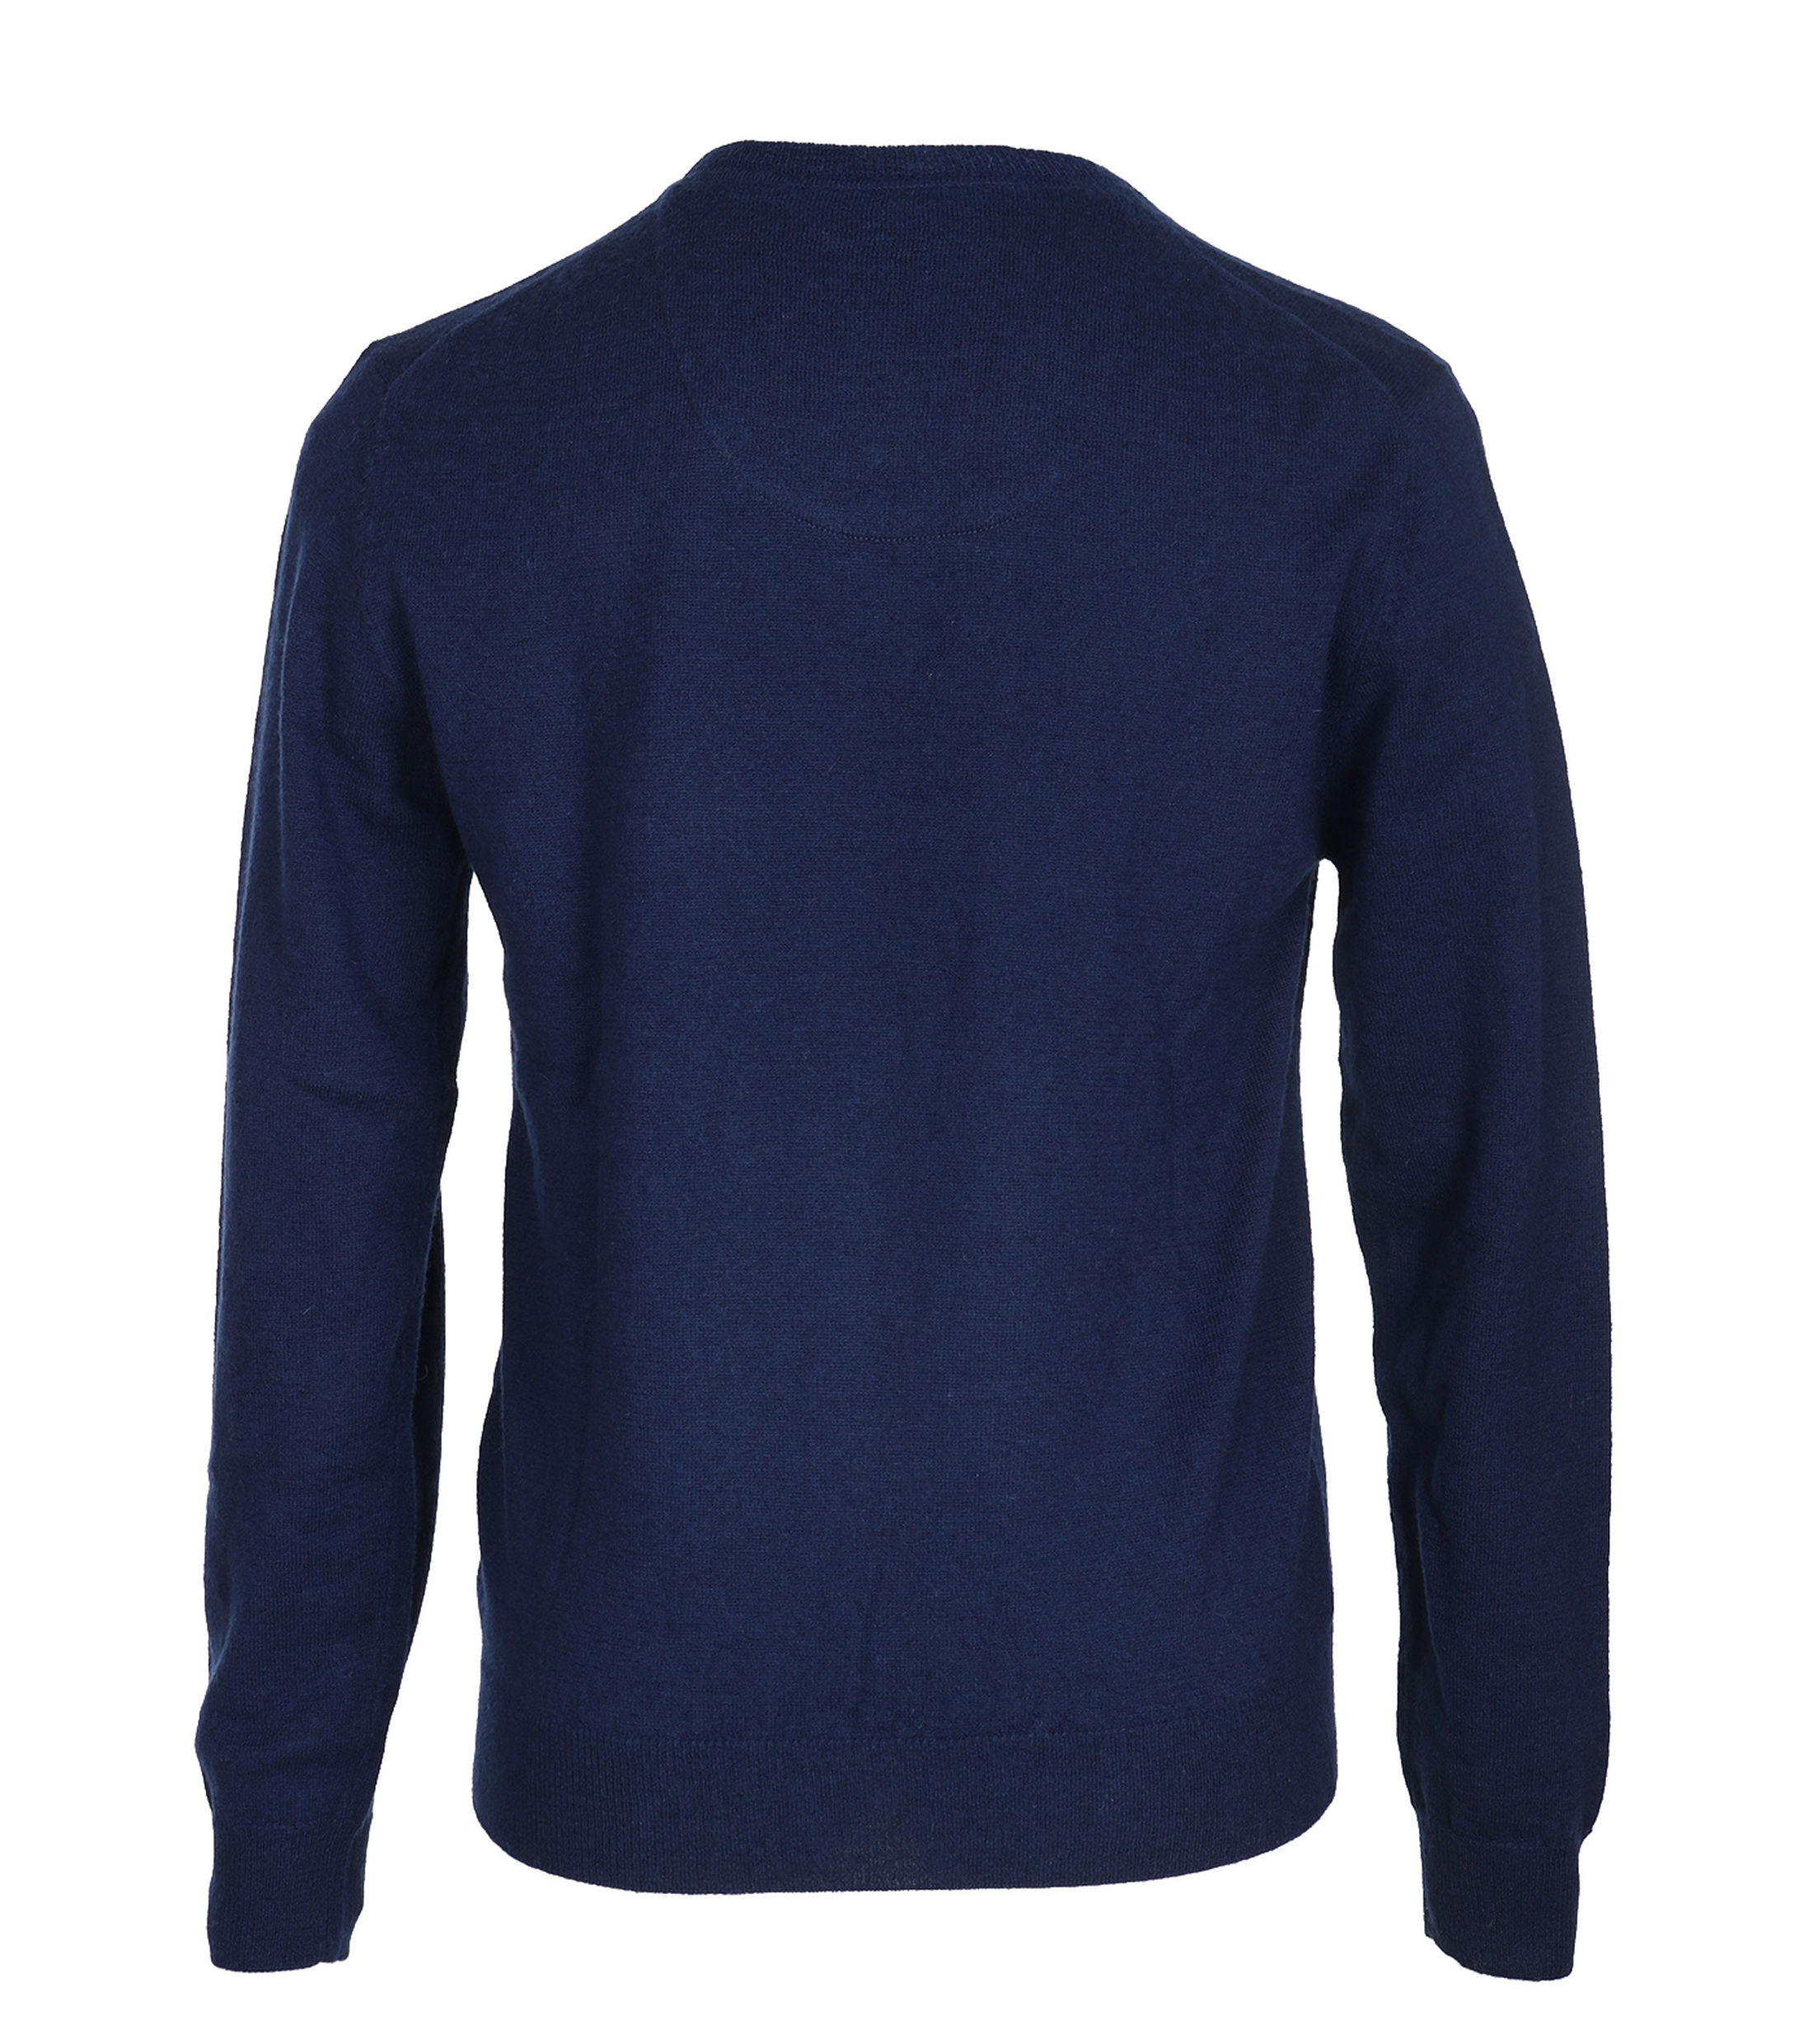 Suitable Pullover Lamswol Navy foto 1